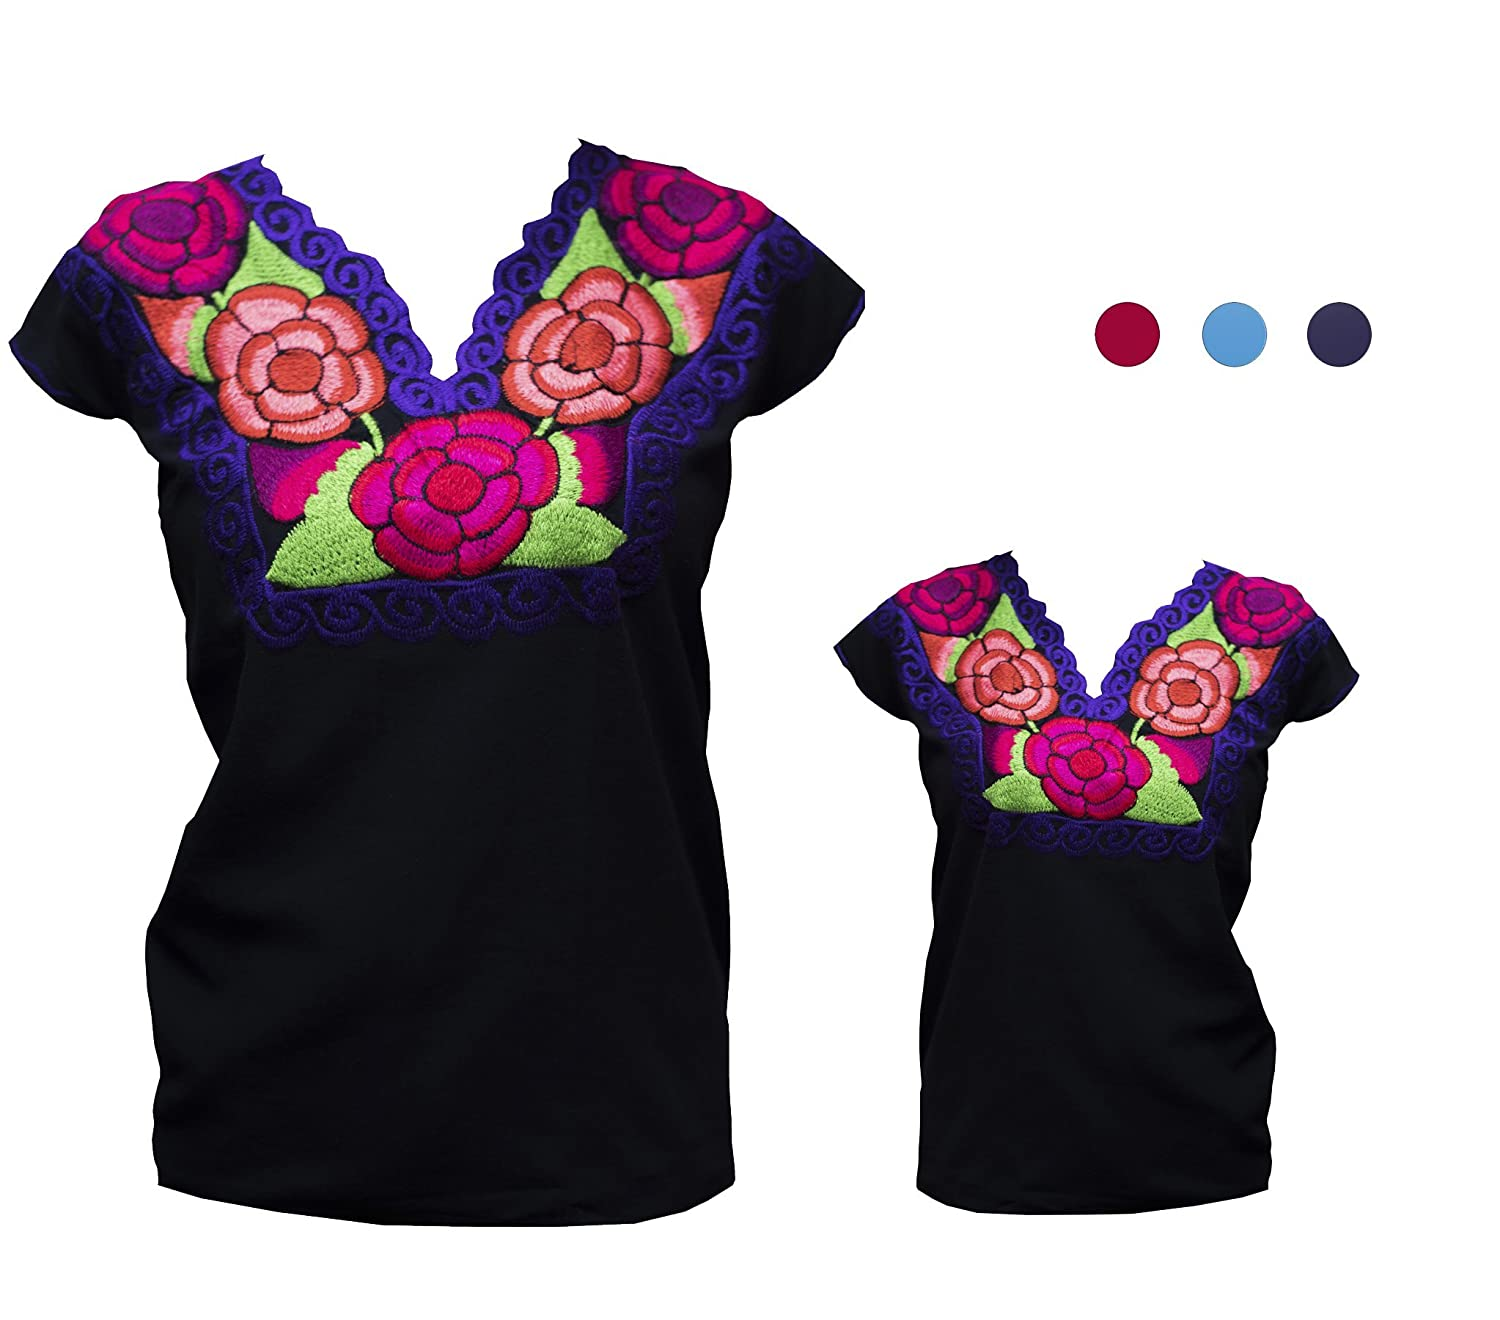 Authentic Mexican Tejido en Telar Floral Embroidered Black Cotton Tunic Peasant Blouse - DeluxeAdultCostumes.com